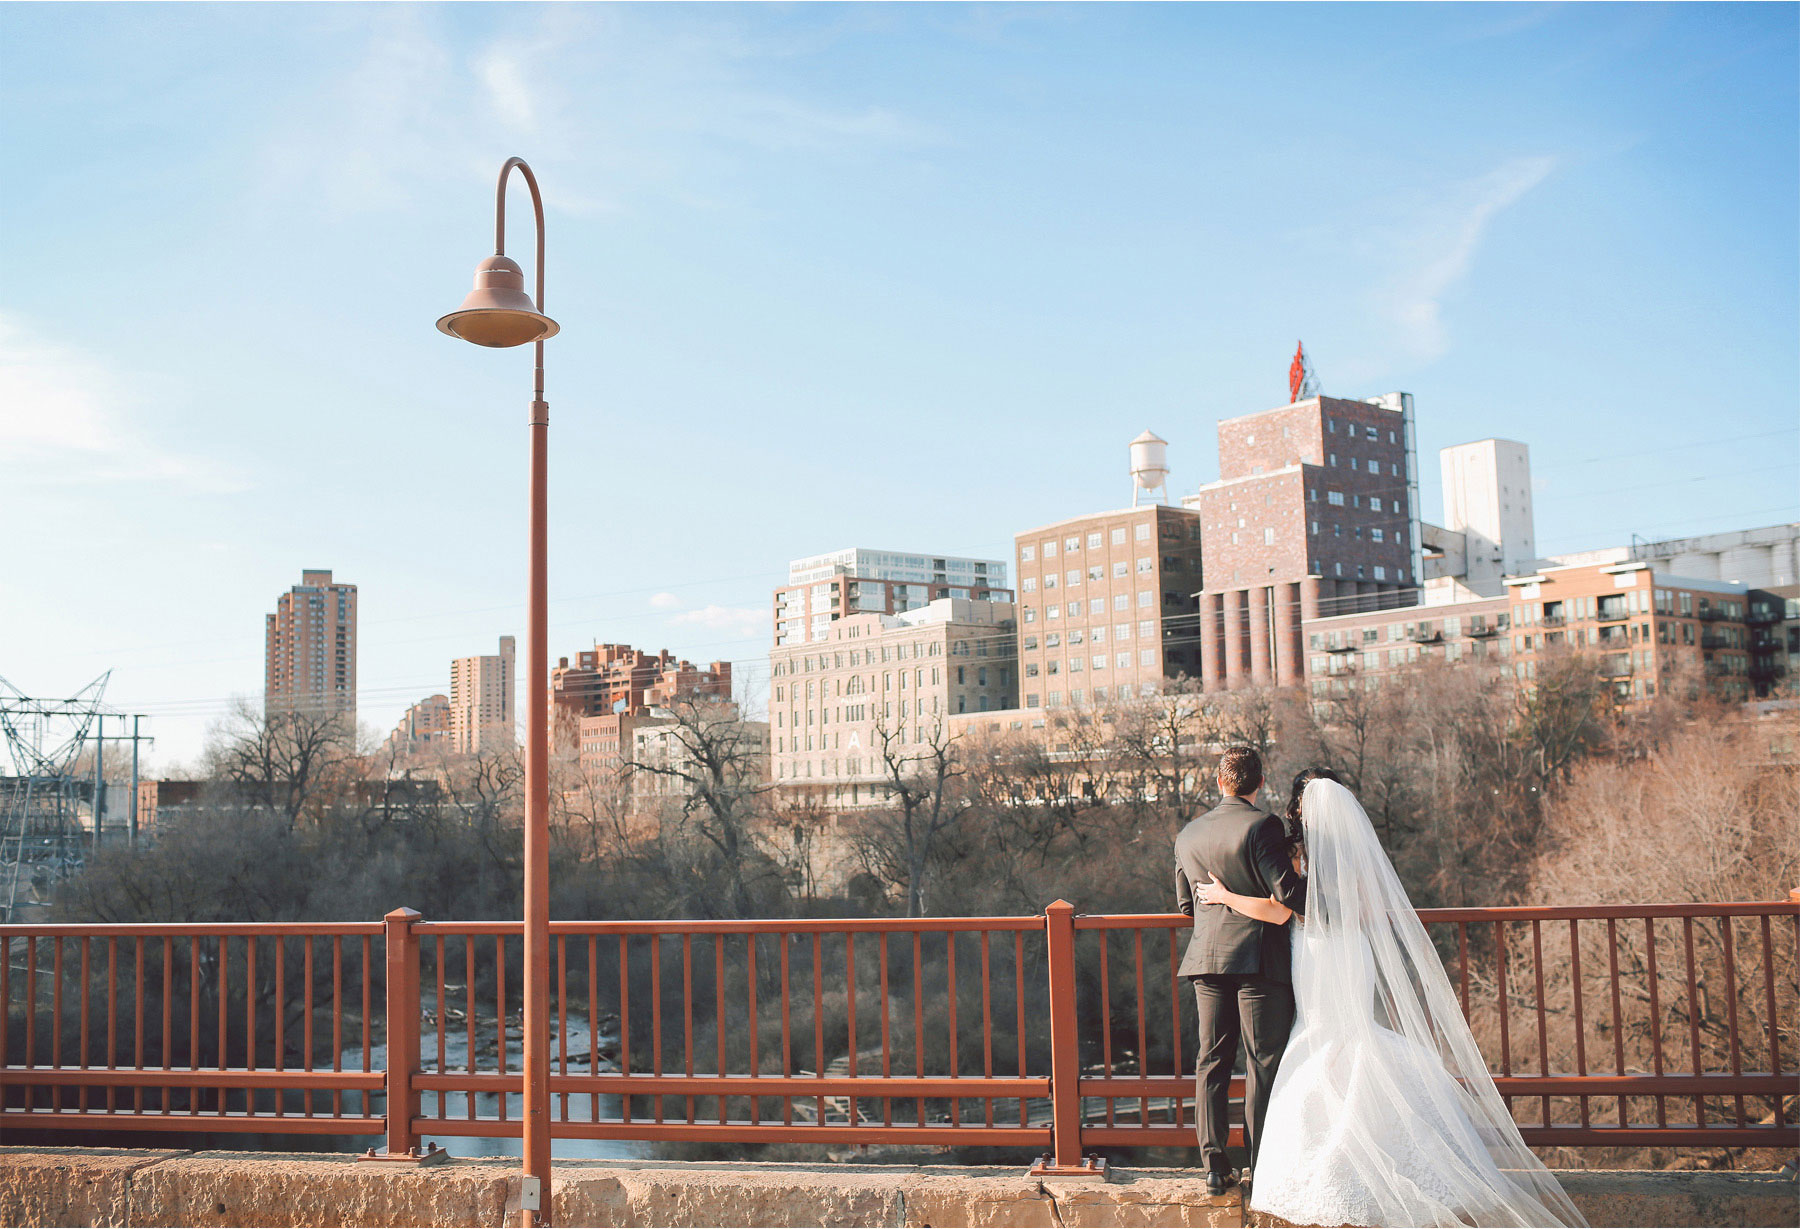 15-Minneapolis-Minnesota-Wedding-Photographer-by-Andrew-Vick-Photography-Stone-Arch-Bridge-Spring-Bride-Groom-Vintage-Laughter-Alex-and-Andy.jpg